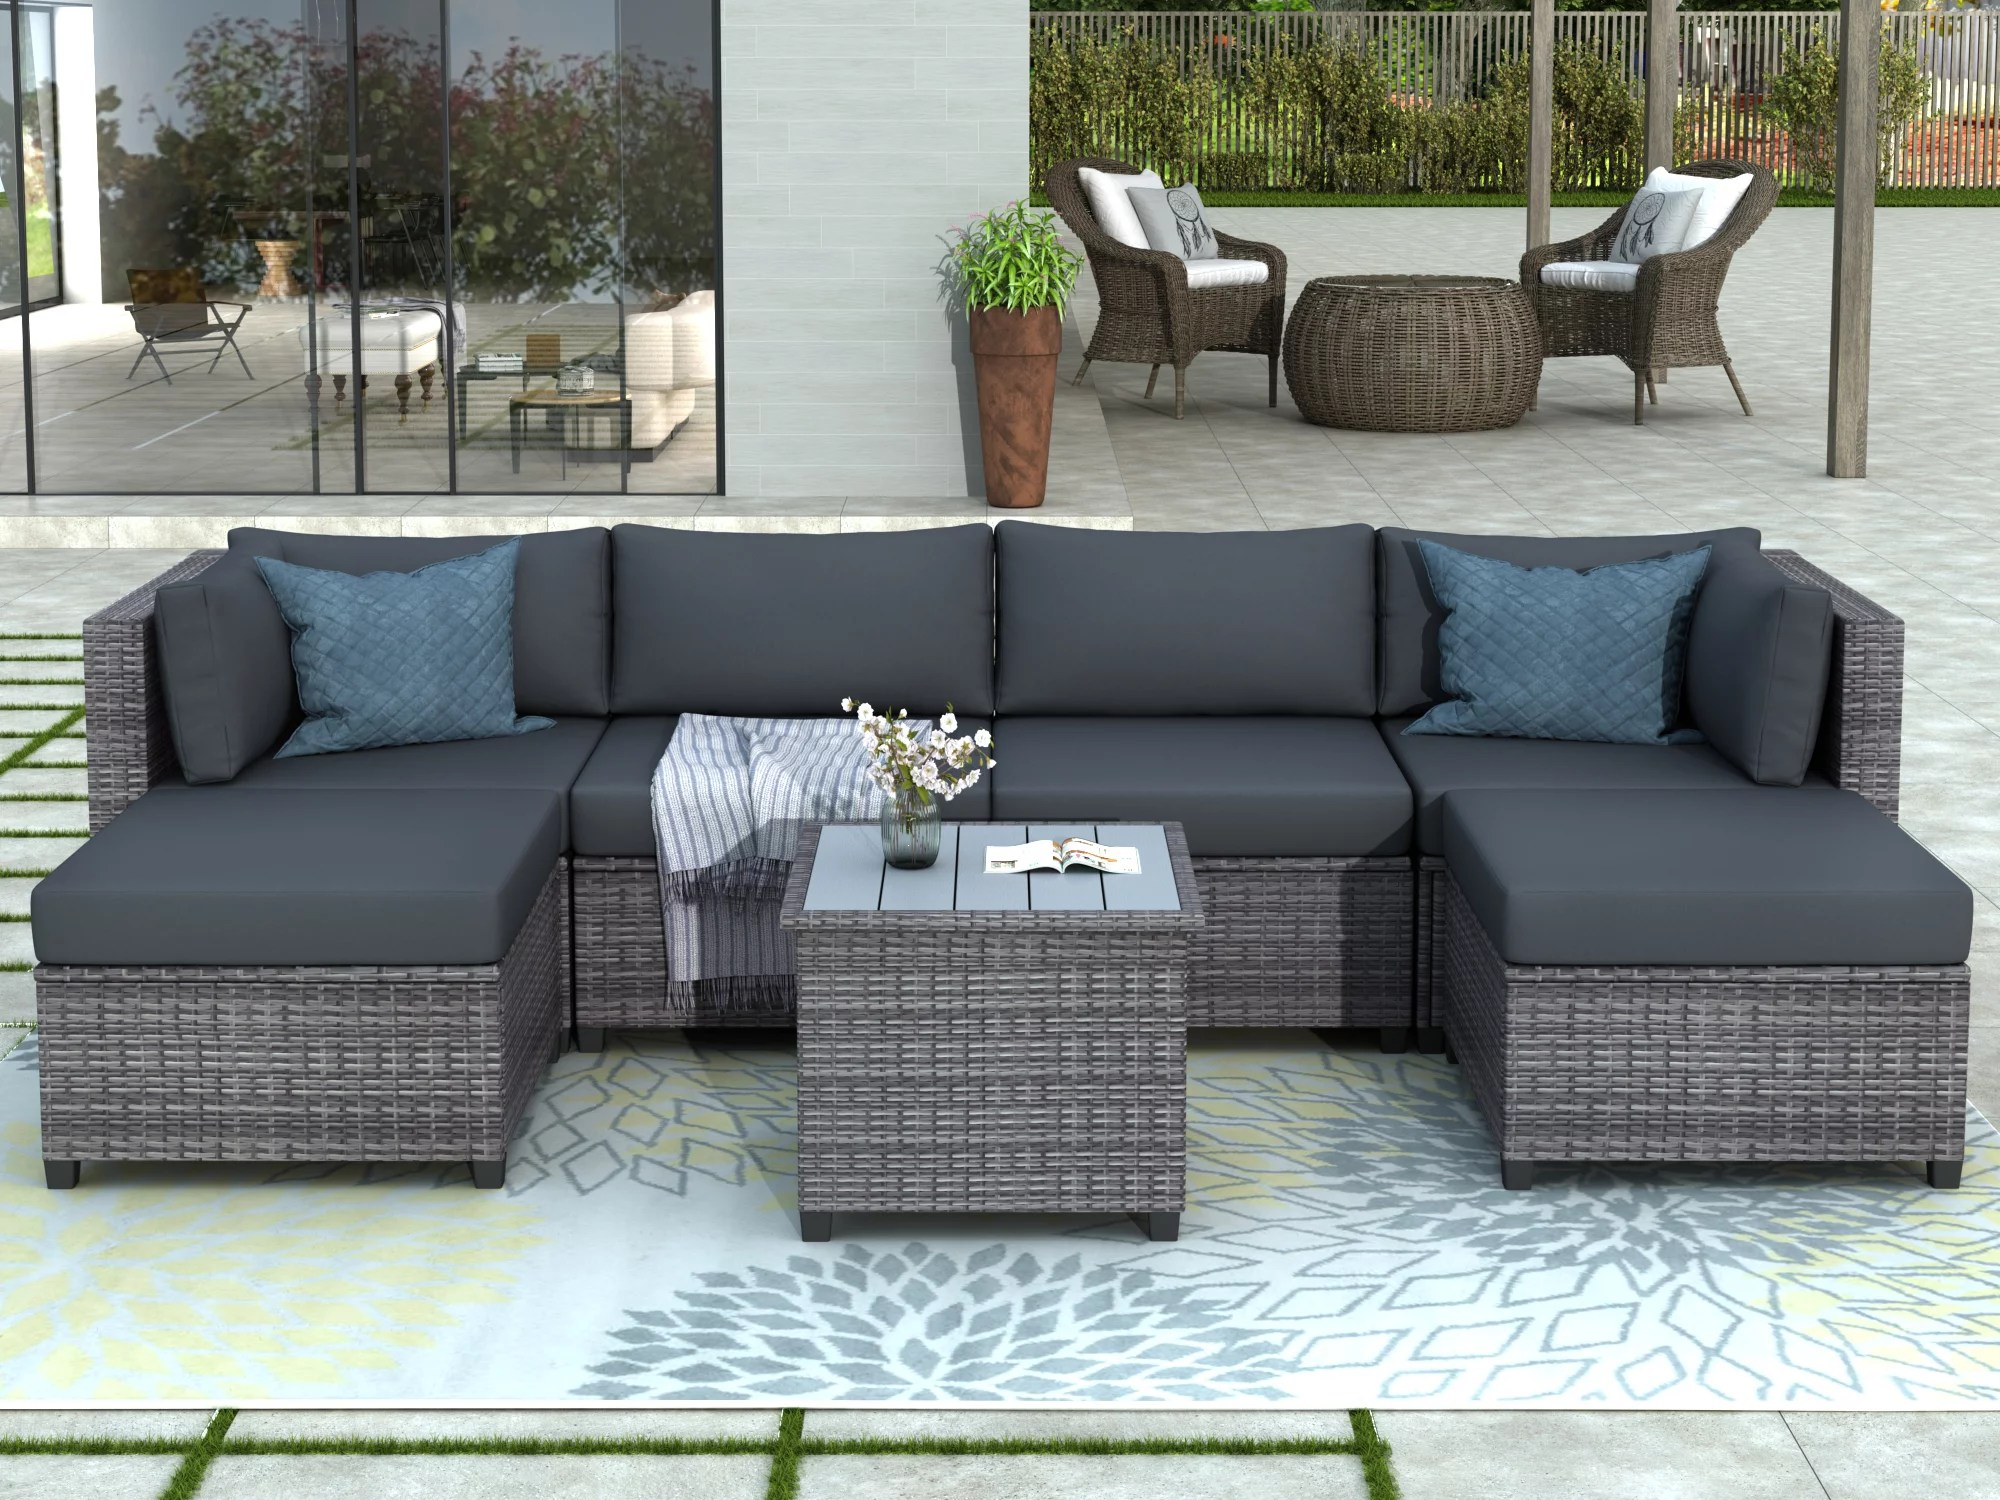 patio furniture set clearance 7 piece patio furniture sets with 4 rattan wicker chairs 2 ottoman coffee table all weather patio sectional sofa set